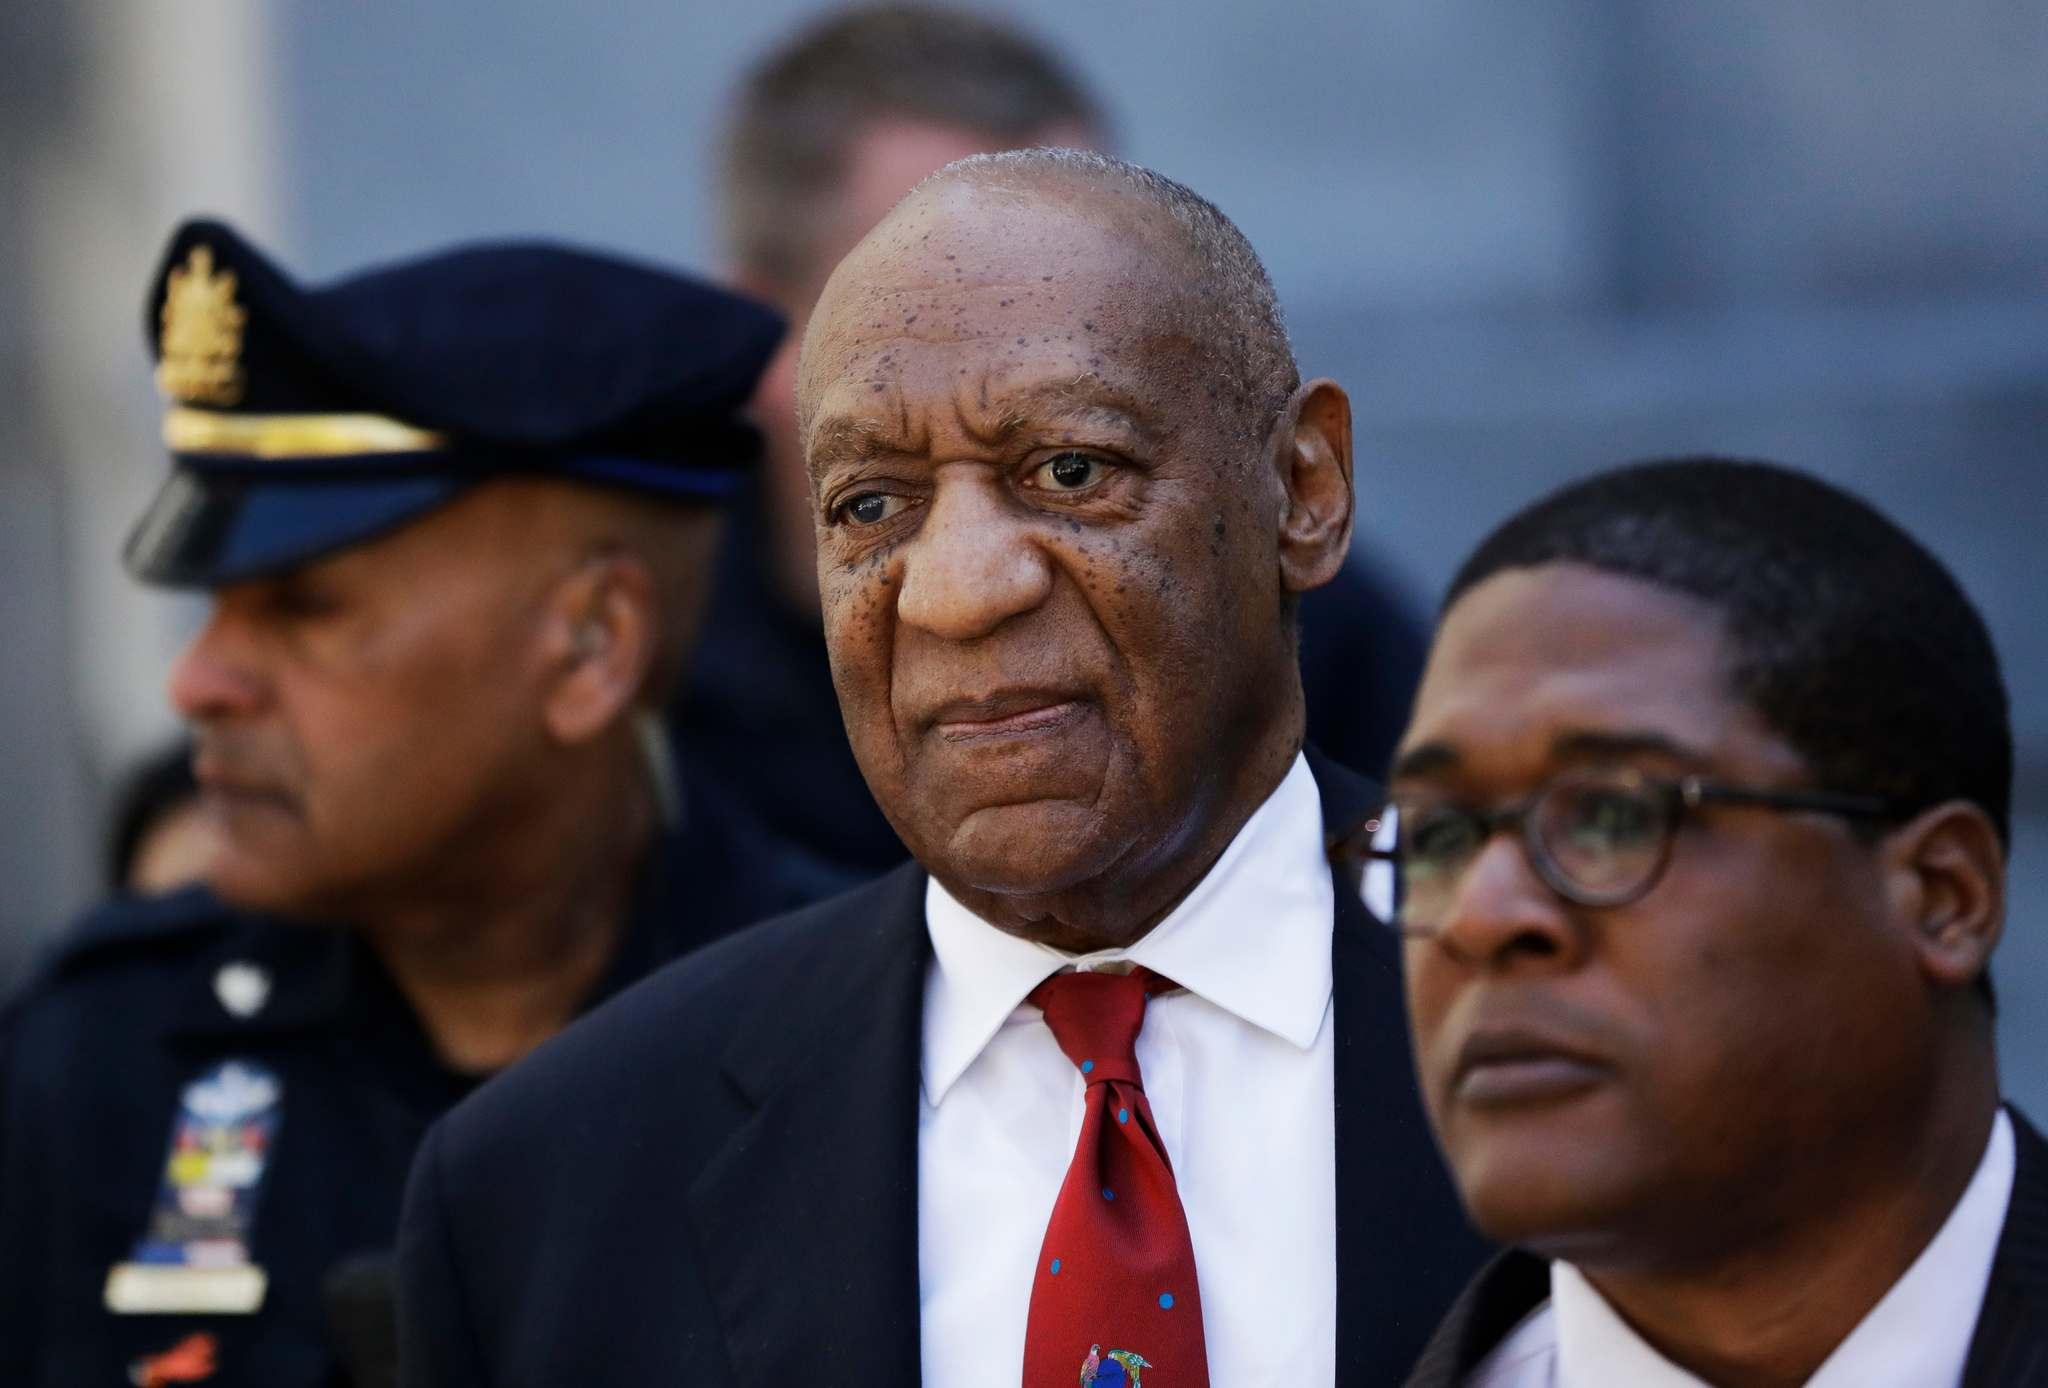 Judge orders house arrest for Bill Cosby